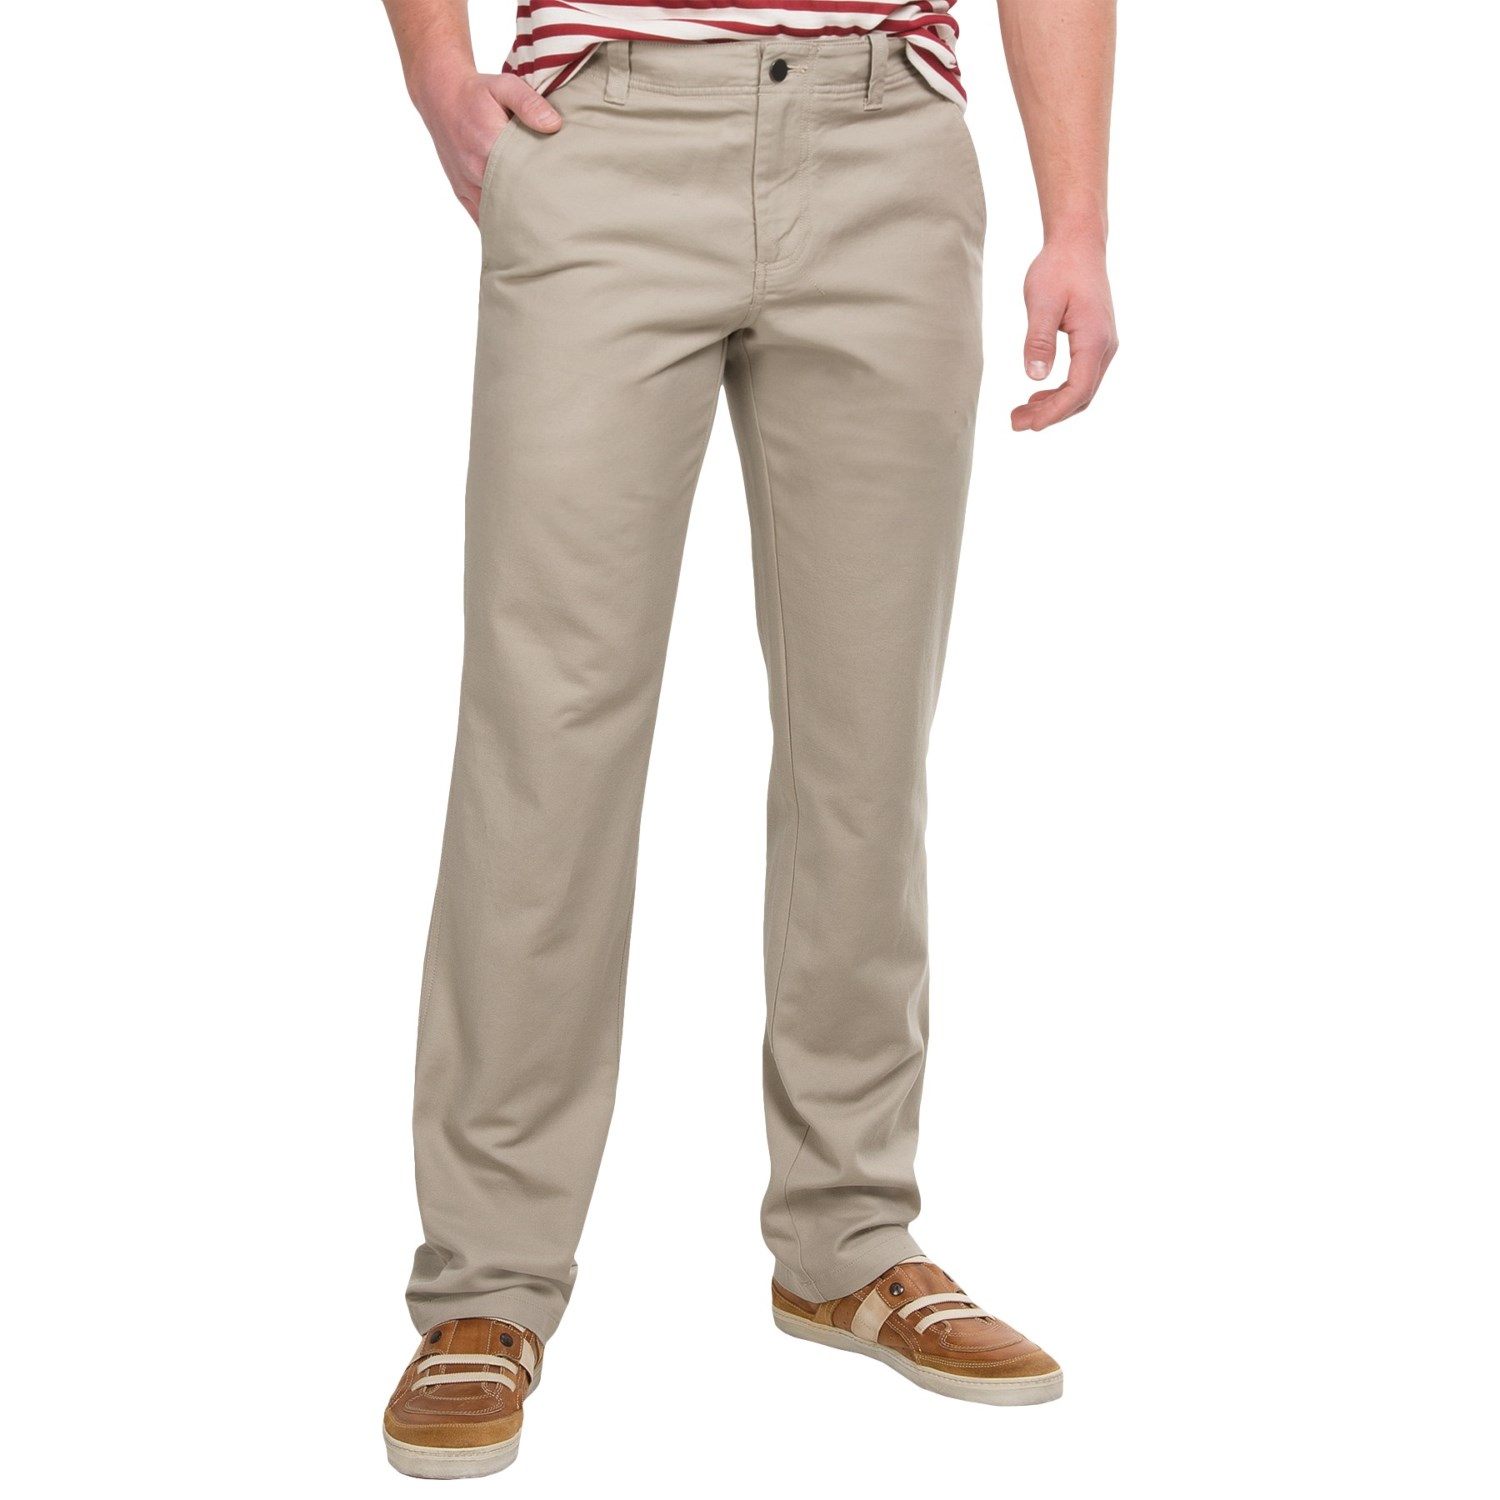 Chinos Pants For Men Photo Album - Watch Out, There's a Clothes About